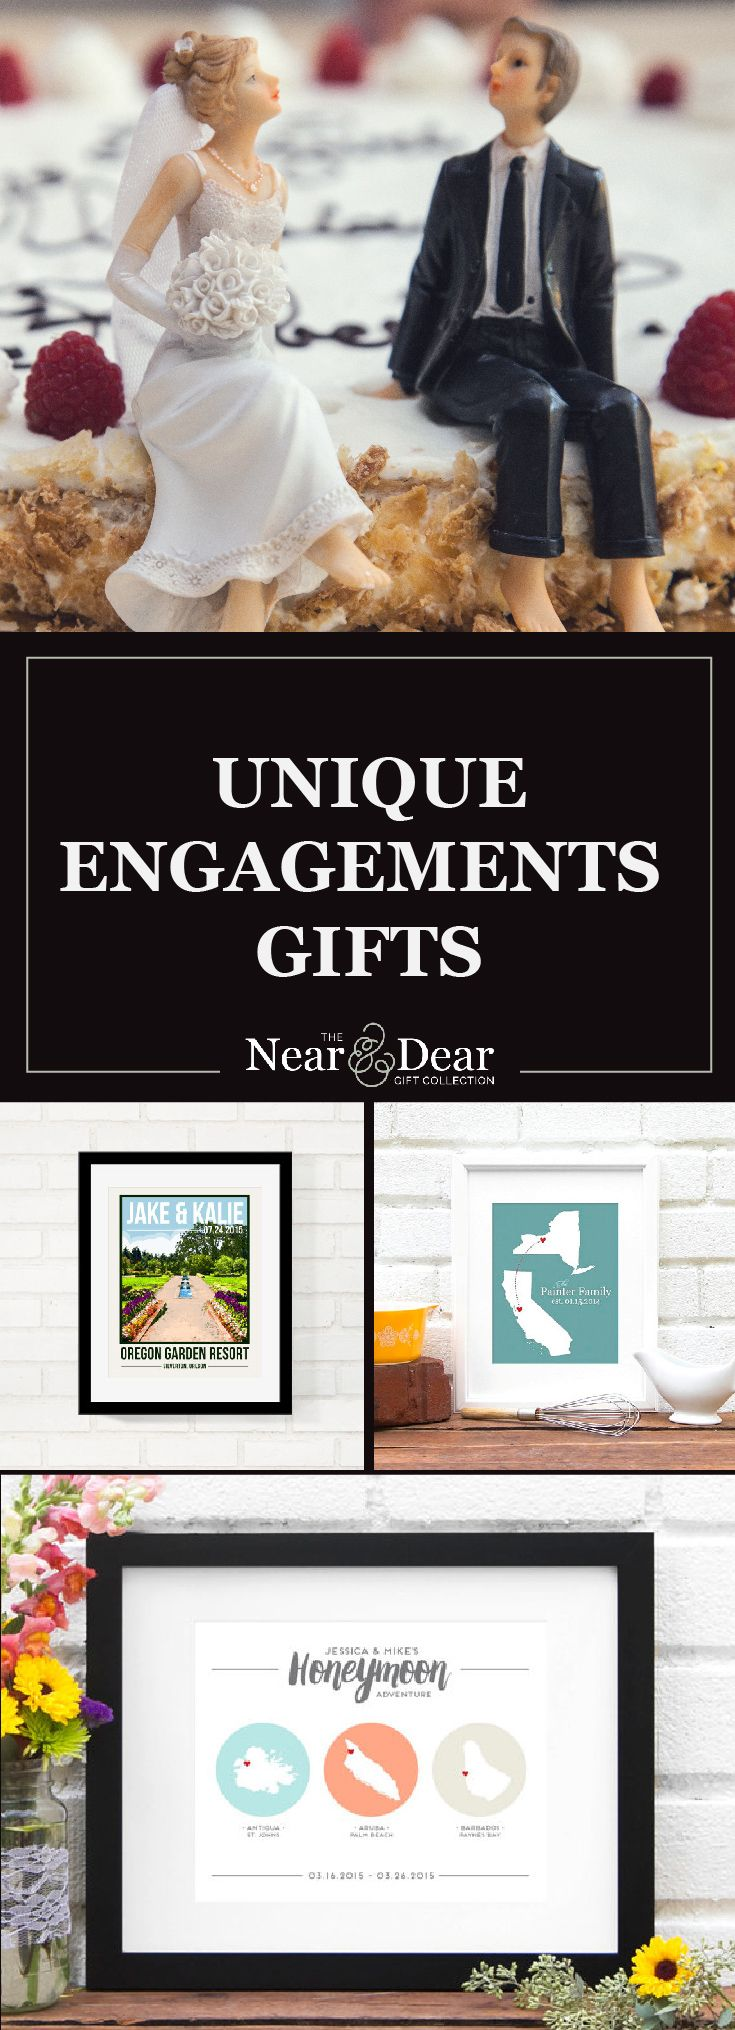 Engagement gifts. Nothing says 'Congratulations on your engagement!' quite like our unique and personalised engagement gifts >>  https://www.etsy.com/listing/257591106/travel-history-map-personalized?ref=related-3 . . . #giftsforher #giftforbride #bridalgift #bride #engagement #weddings #weddinggift #weddinginspoloveu #giftforgirlfriend #anniversarygift #uniquegifts #personalizedgifts #uniquegiftideas #gifts #holidays #Christmasgiftsforhim #personalizedgifts #Christmasgiftidea